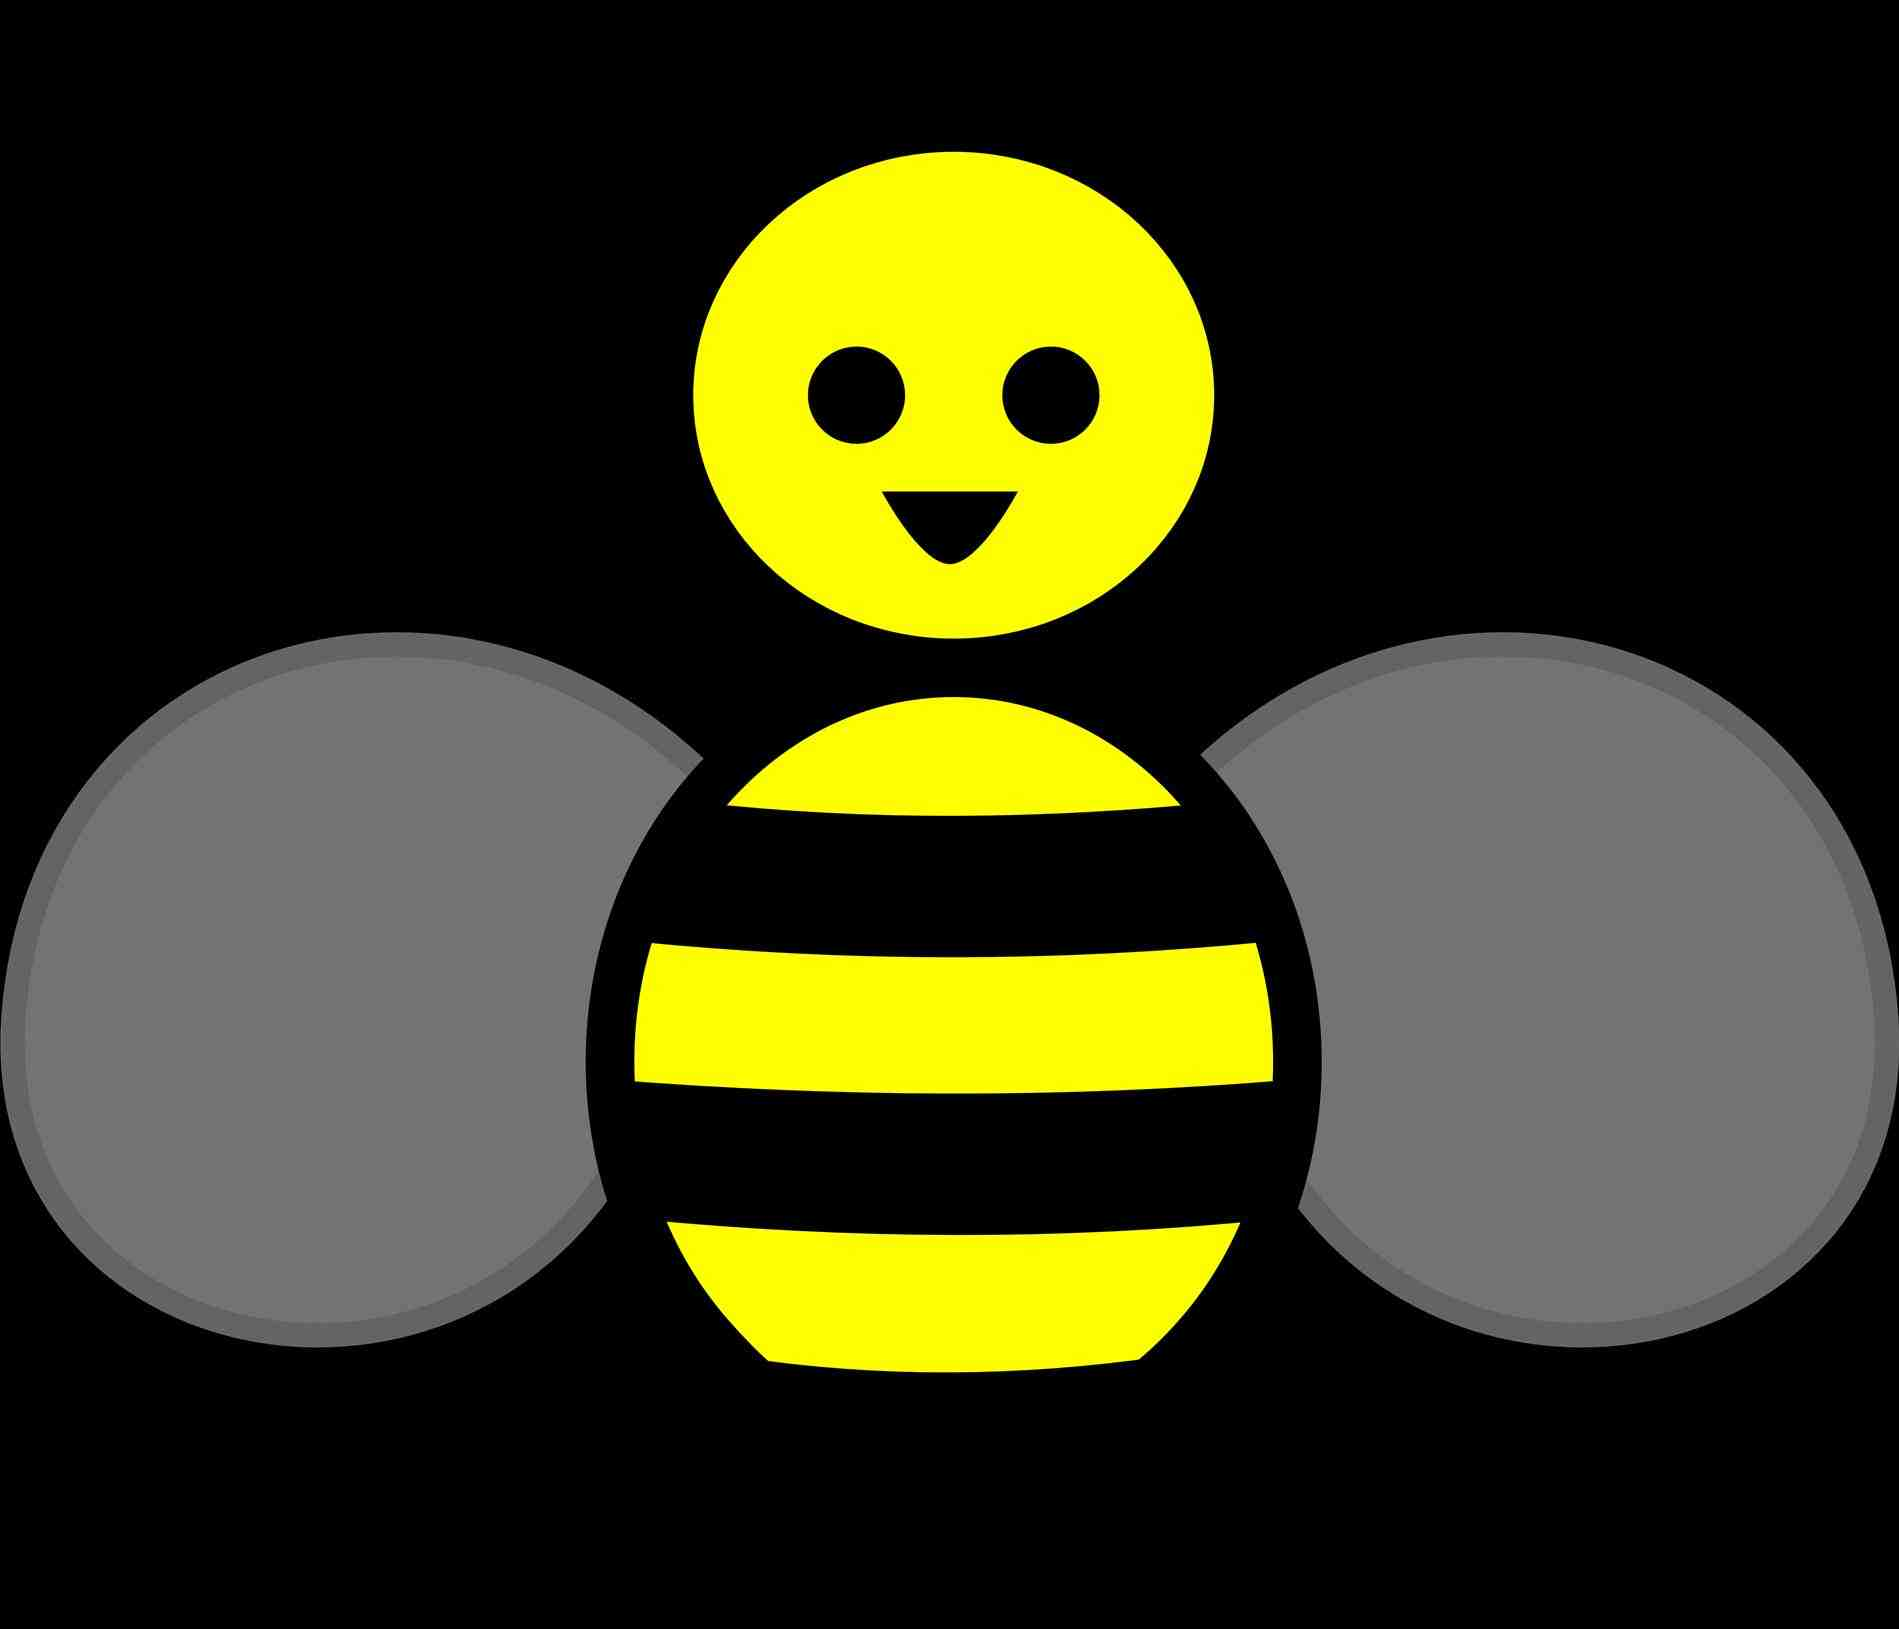 1899x1629 Animated Cute Bumble Bee Drawings Free Download Clip Art On Images